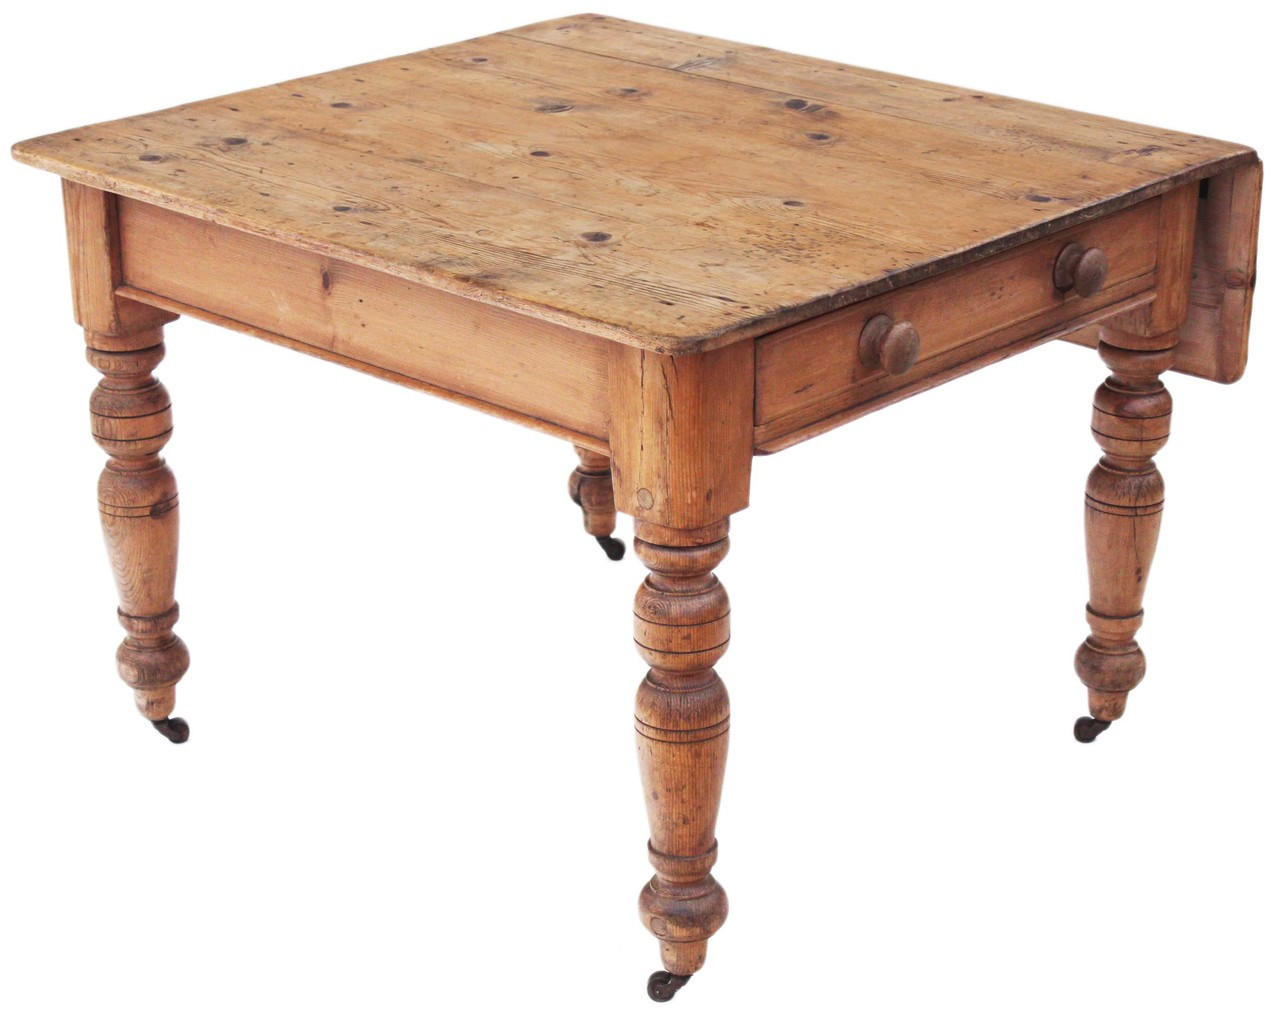 Antique Victorian pine kitchen dining table scrub top ...